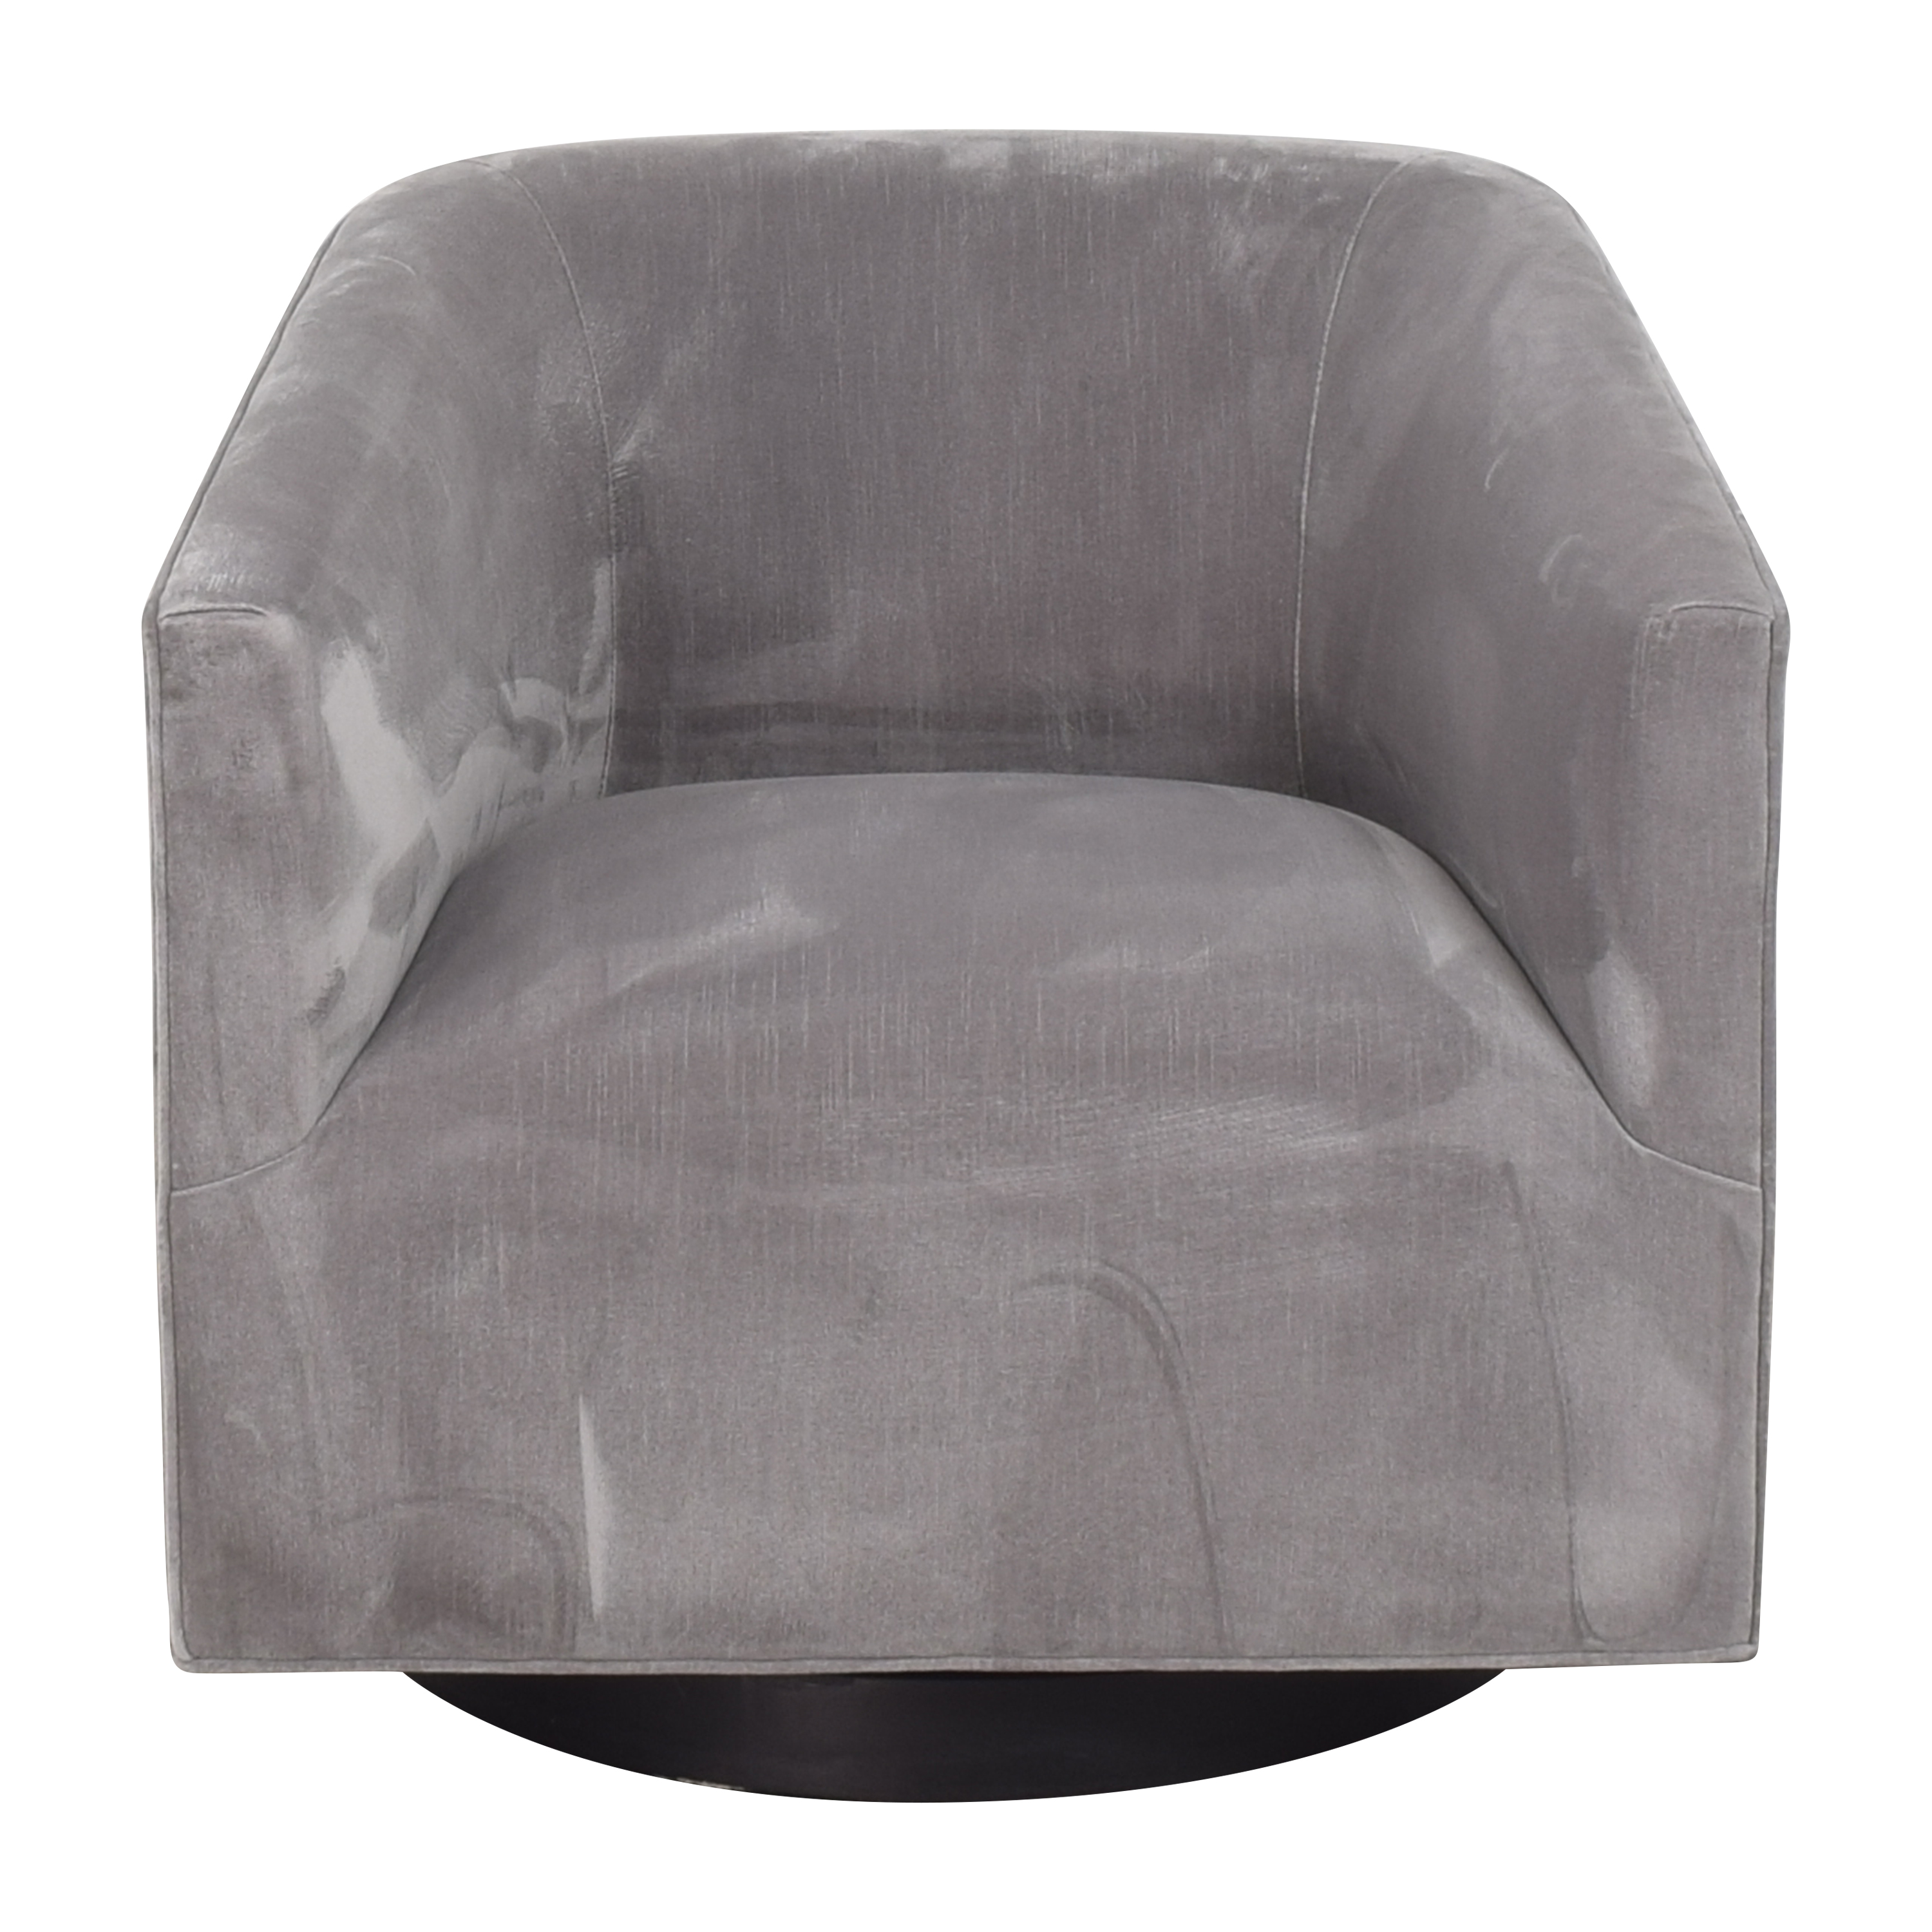 Restoration Hardware Restoration Hardware 1950s Italian Shelter Arm Swivel Chair Accent Chairs